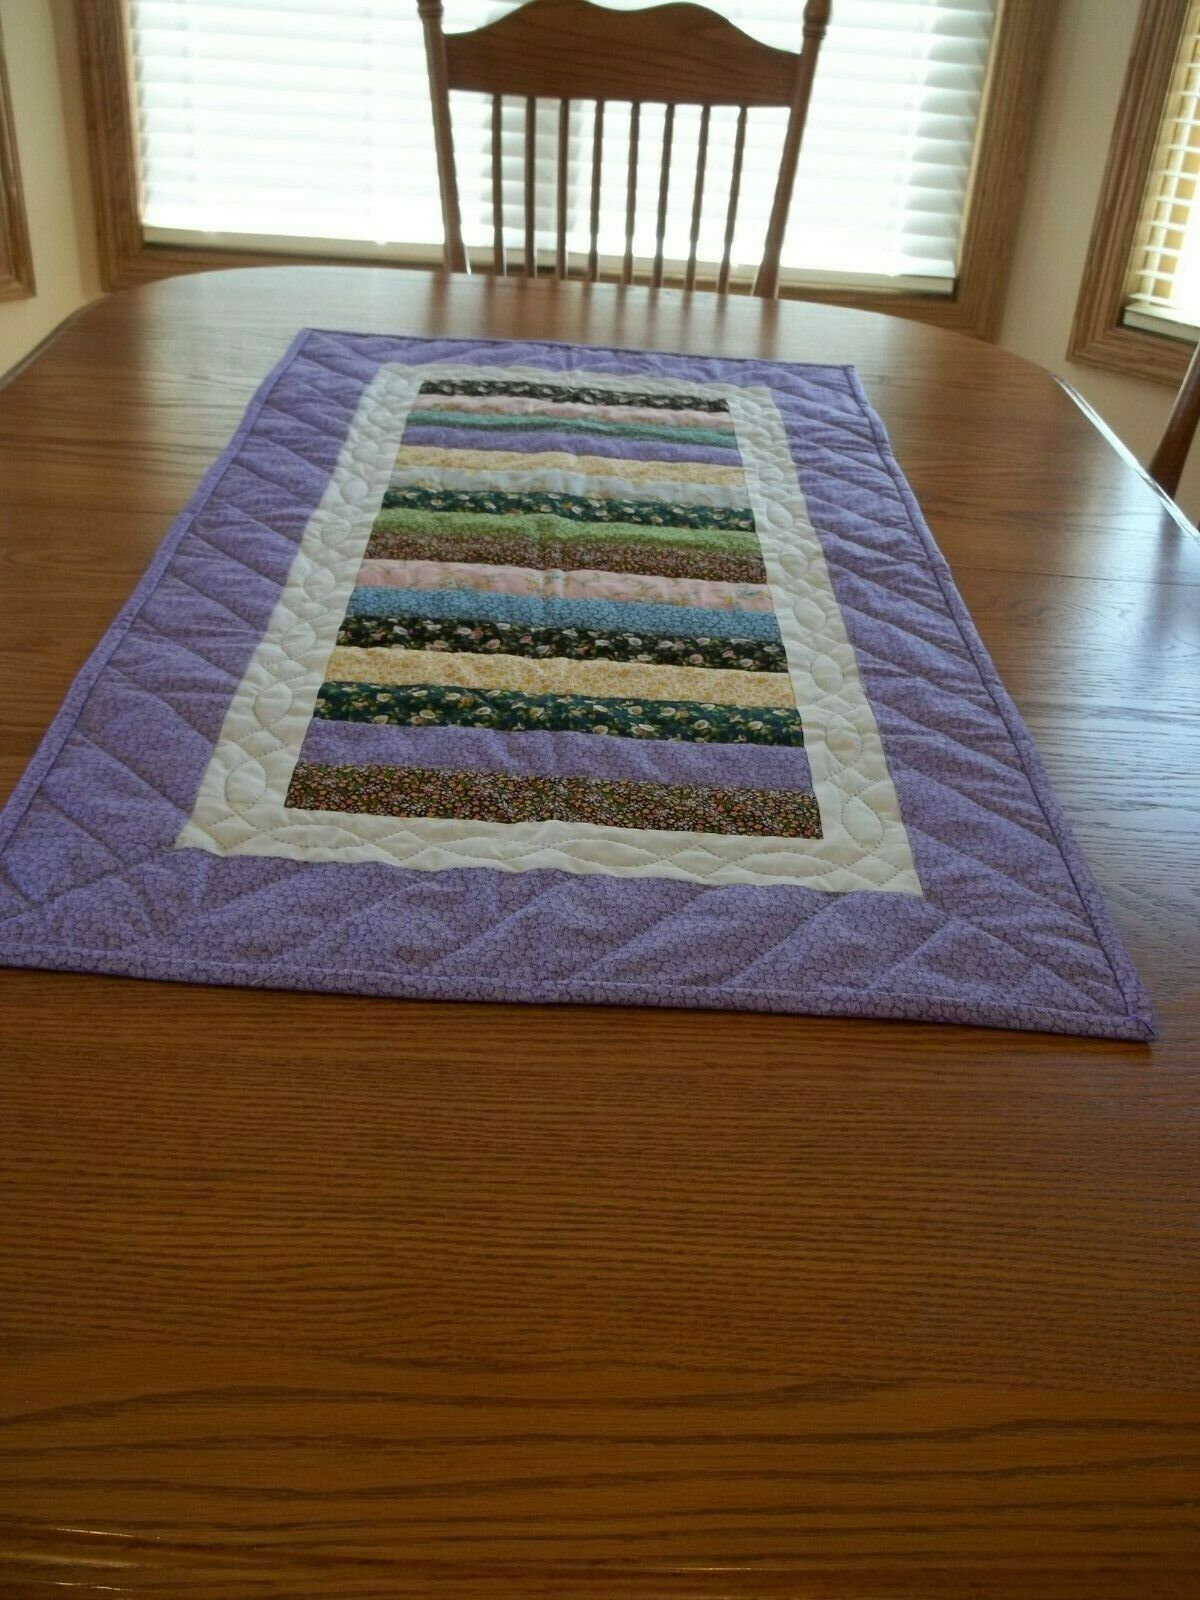 Handcrafted & Main Matelassé Table Runner, 22 1 2  x 42 1 2 , Neuf, 100% coton